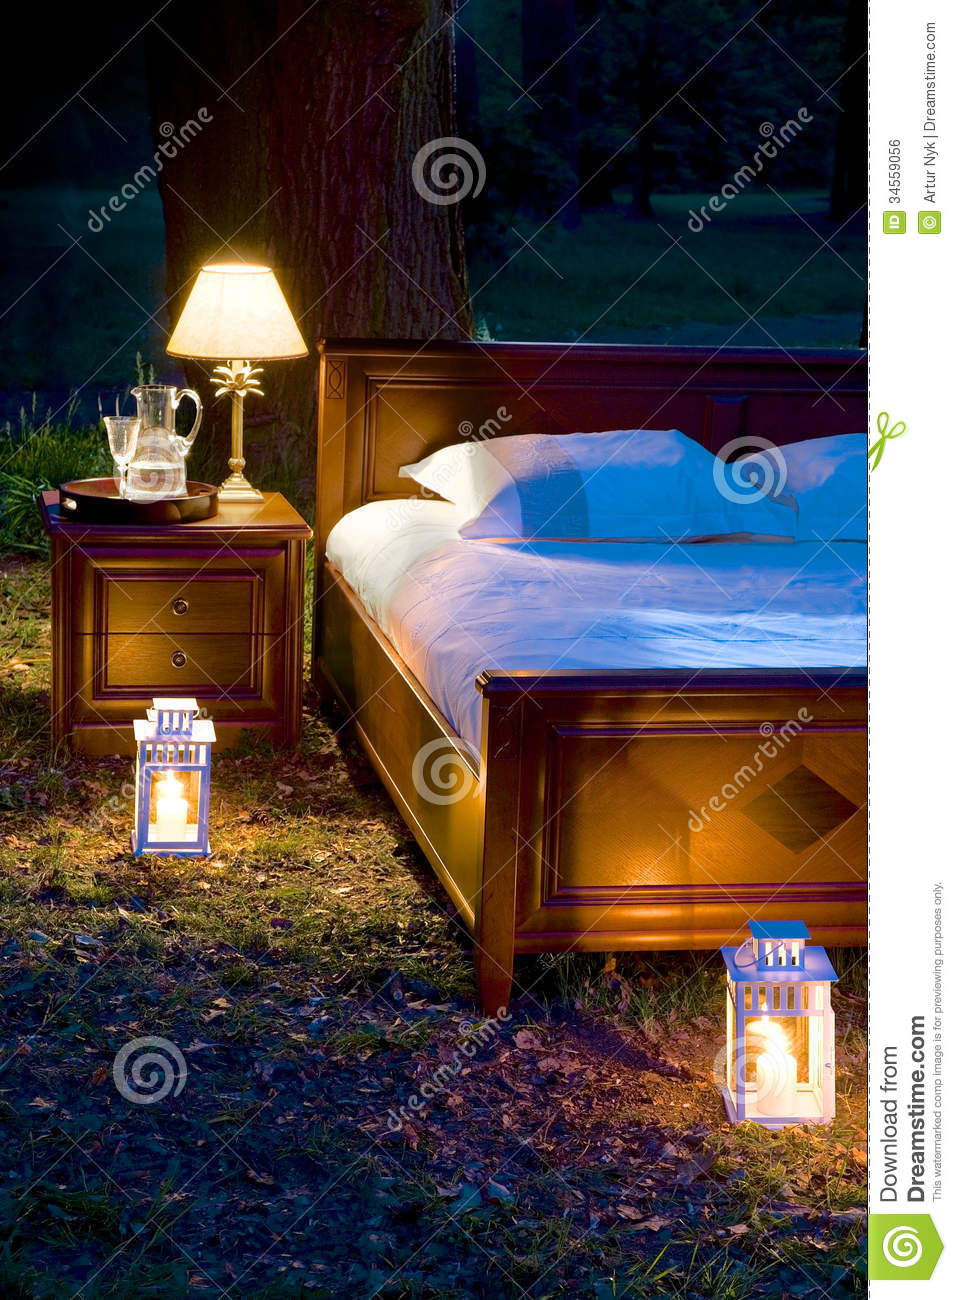 Bed In Forest Stock Photo. Image Of Lazy, Field, Space